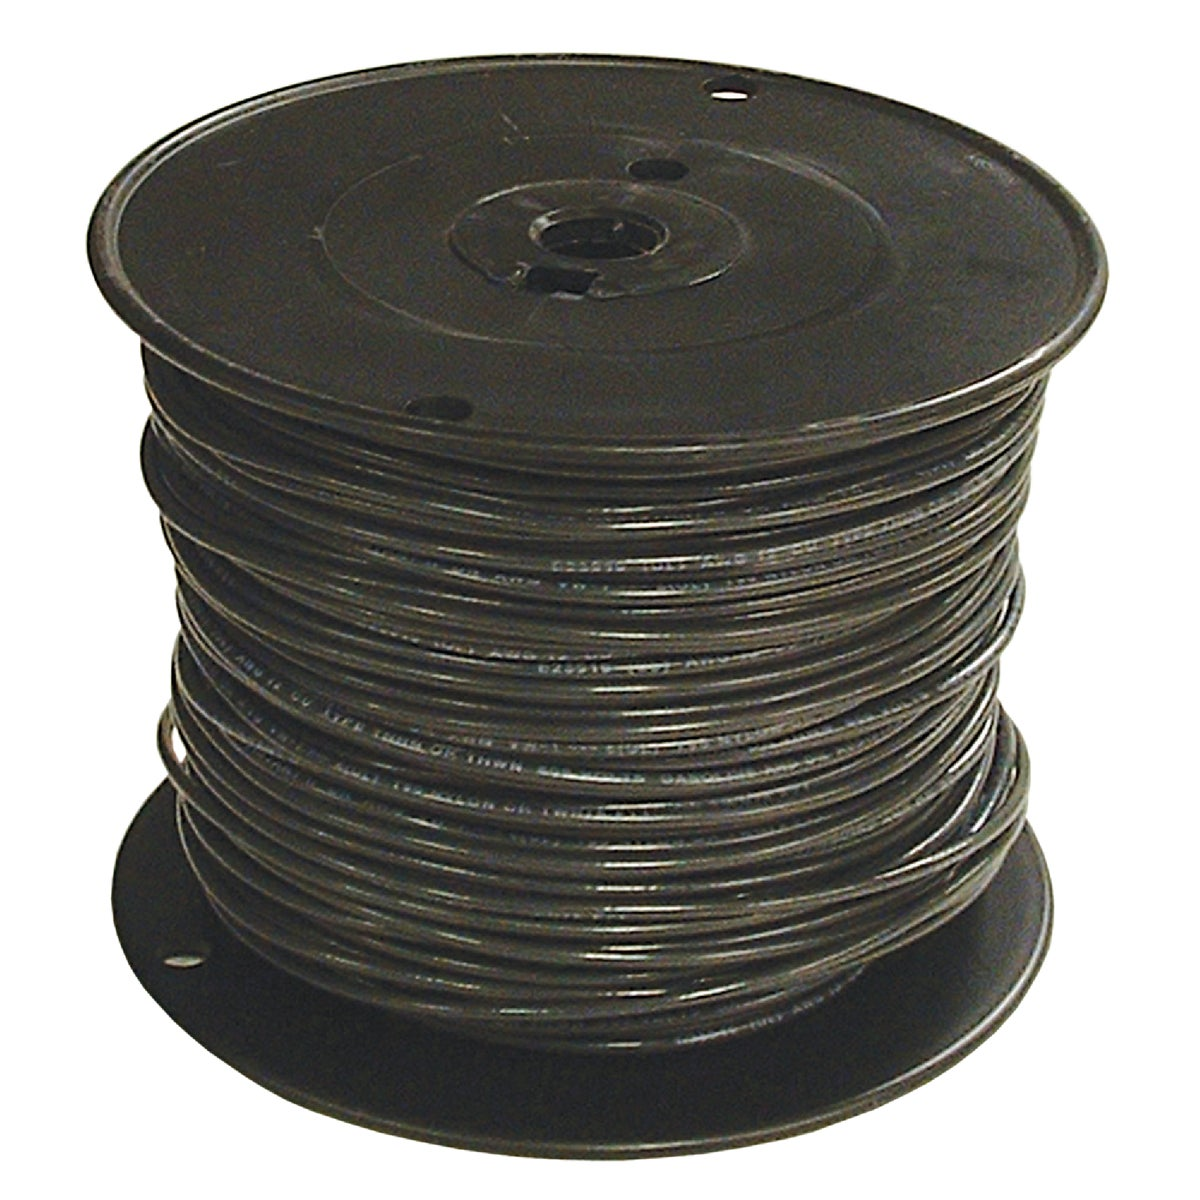 500' 1STR BLK THHN WIRE - 20504702 by Southwire Company